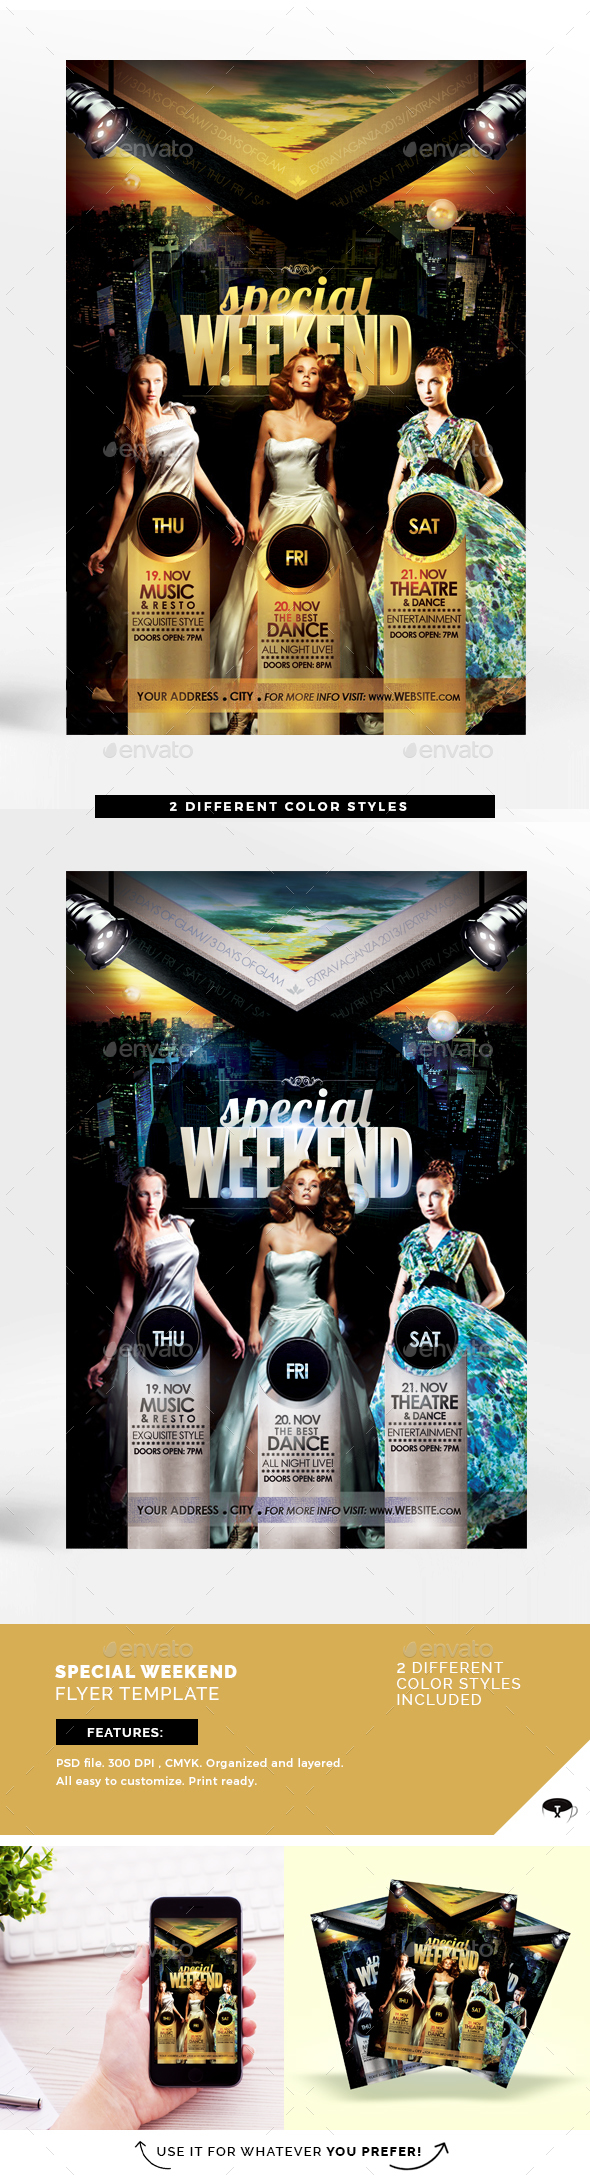 Special Weekend Flyer Template - Flyers Print Templates